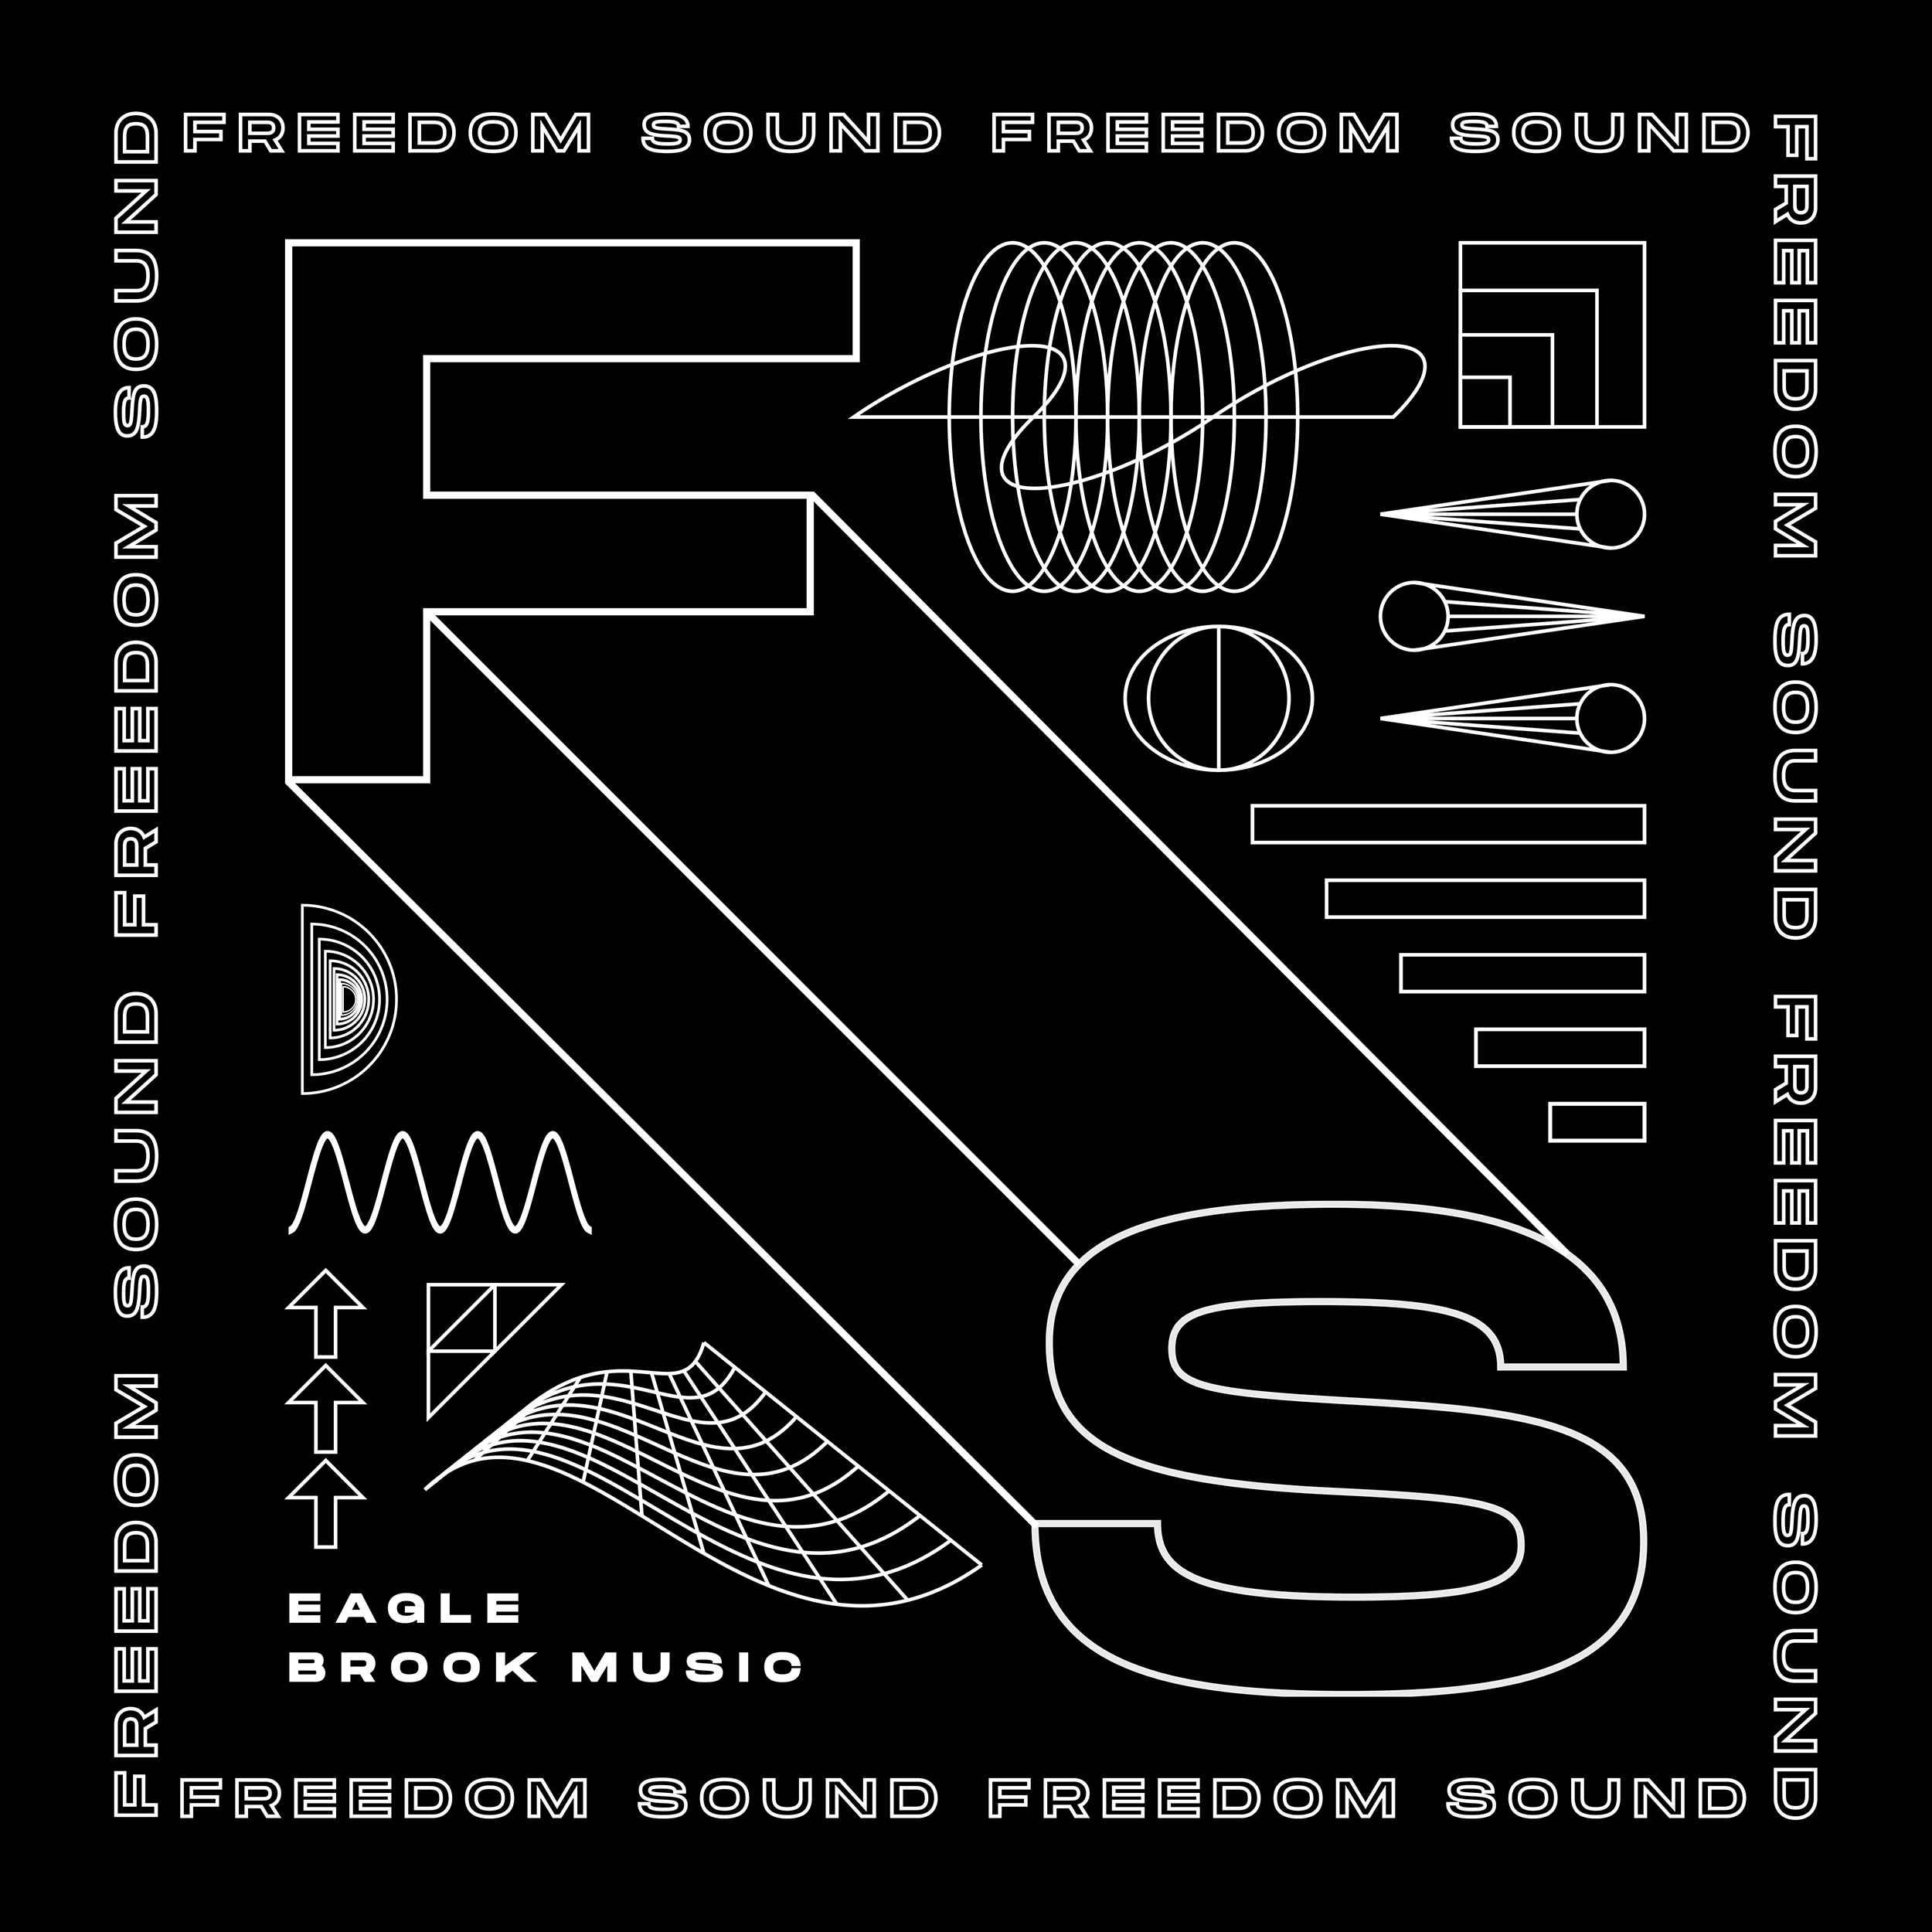 Freedom Sound EP Artwork